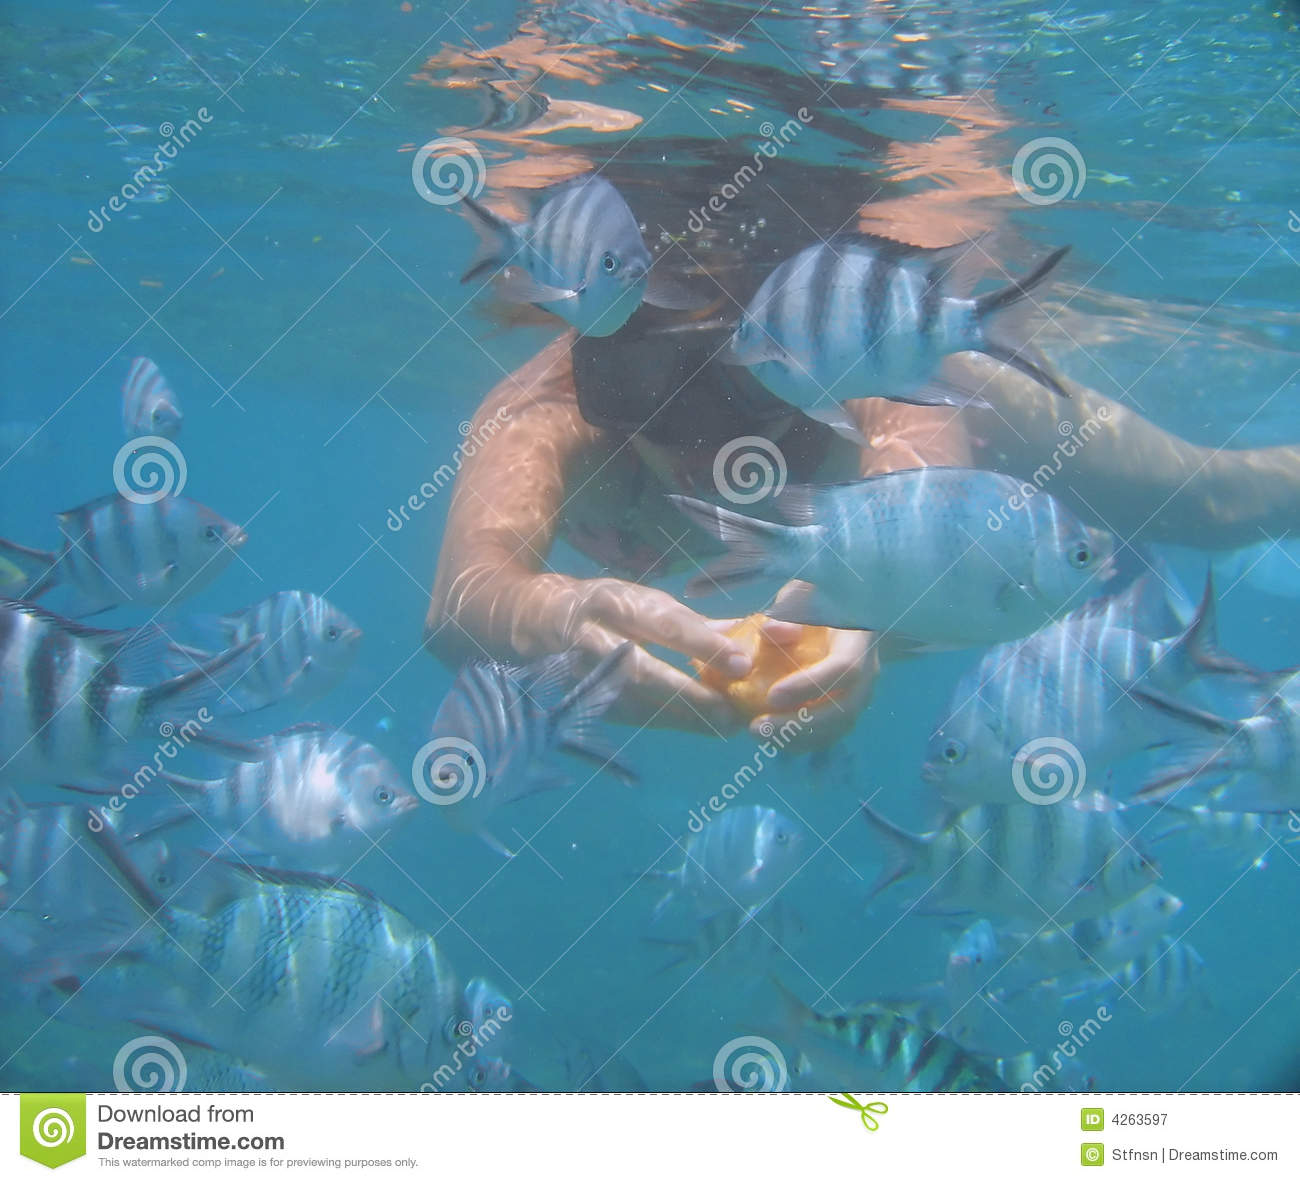 Swimming with fish in the ocean stock image image 4263597 for Dream of fish swimming